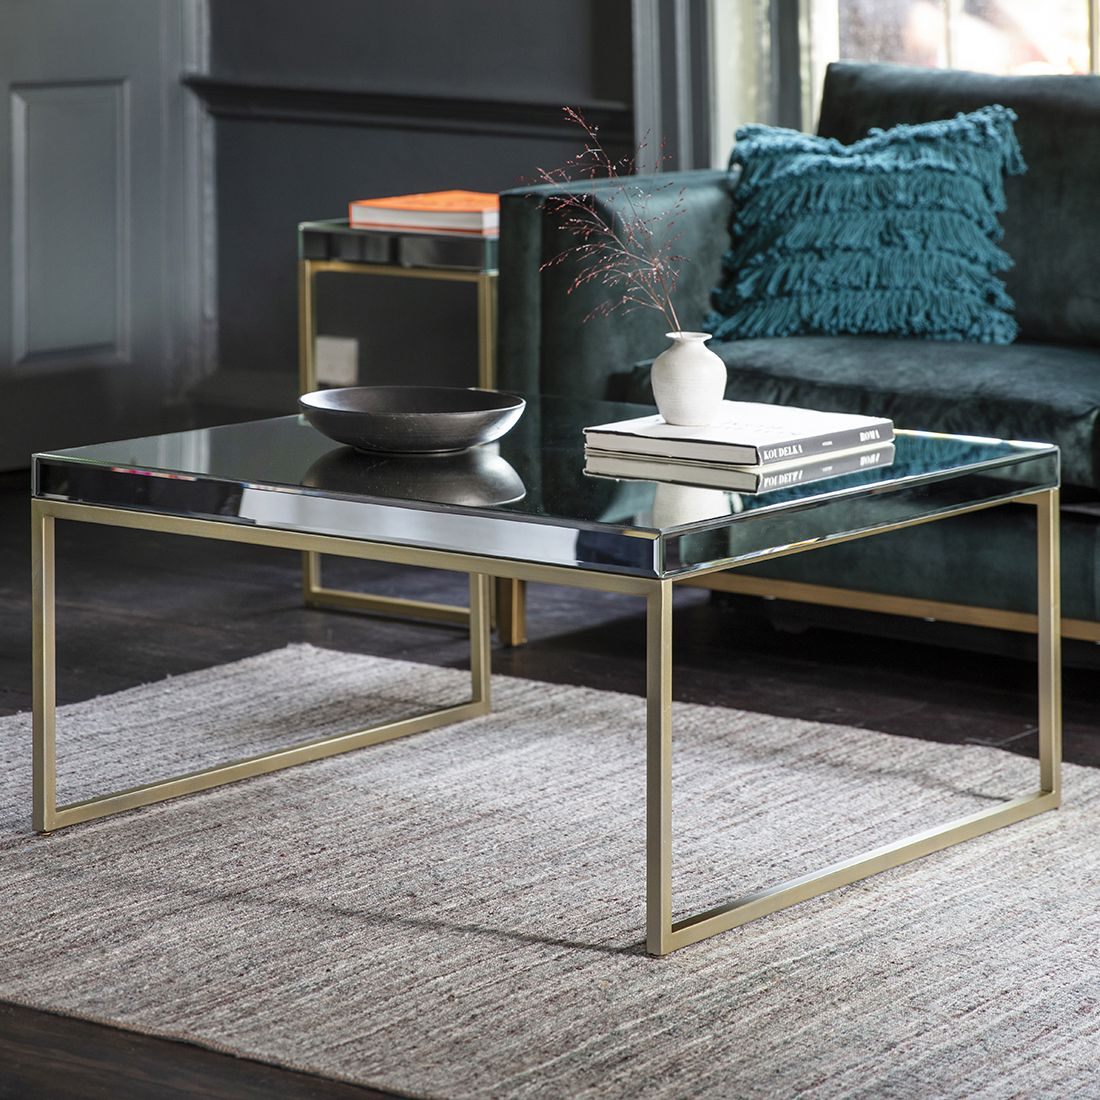 Champagne Gold Mirrored Coffee Table Coffee Table Mirrored Coffee Tables Coffee Table Square